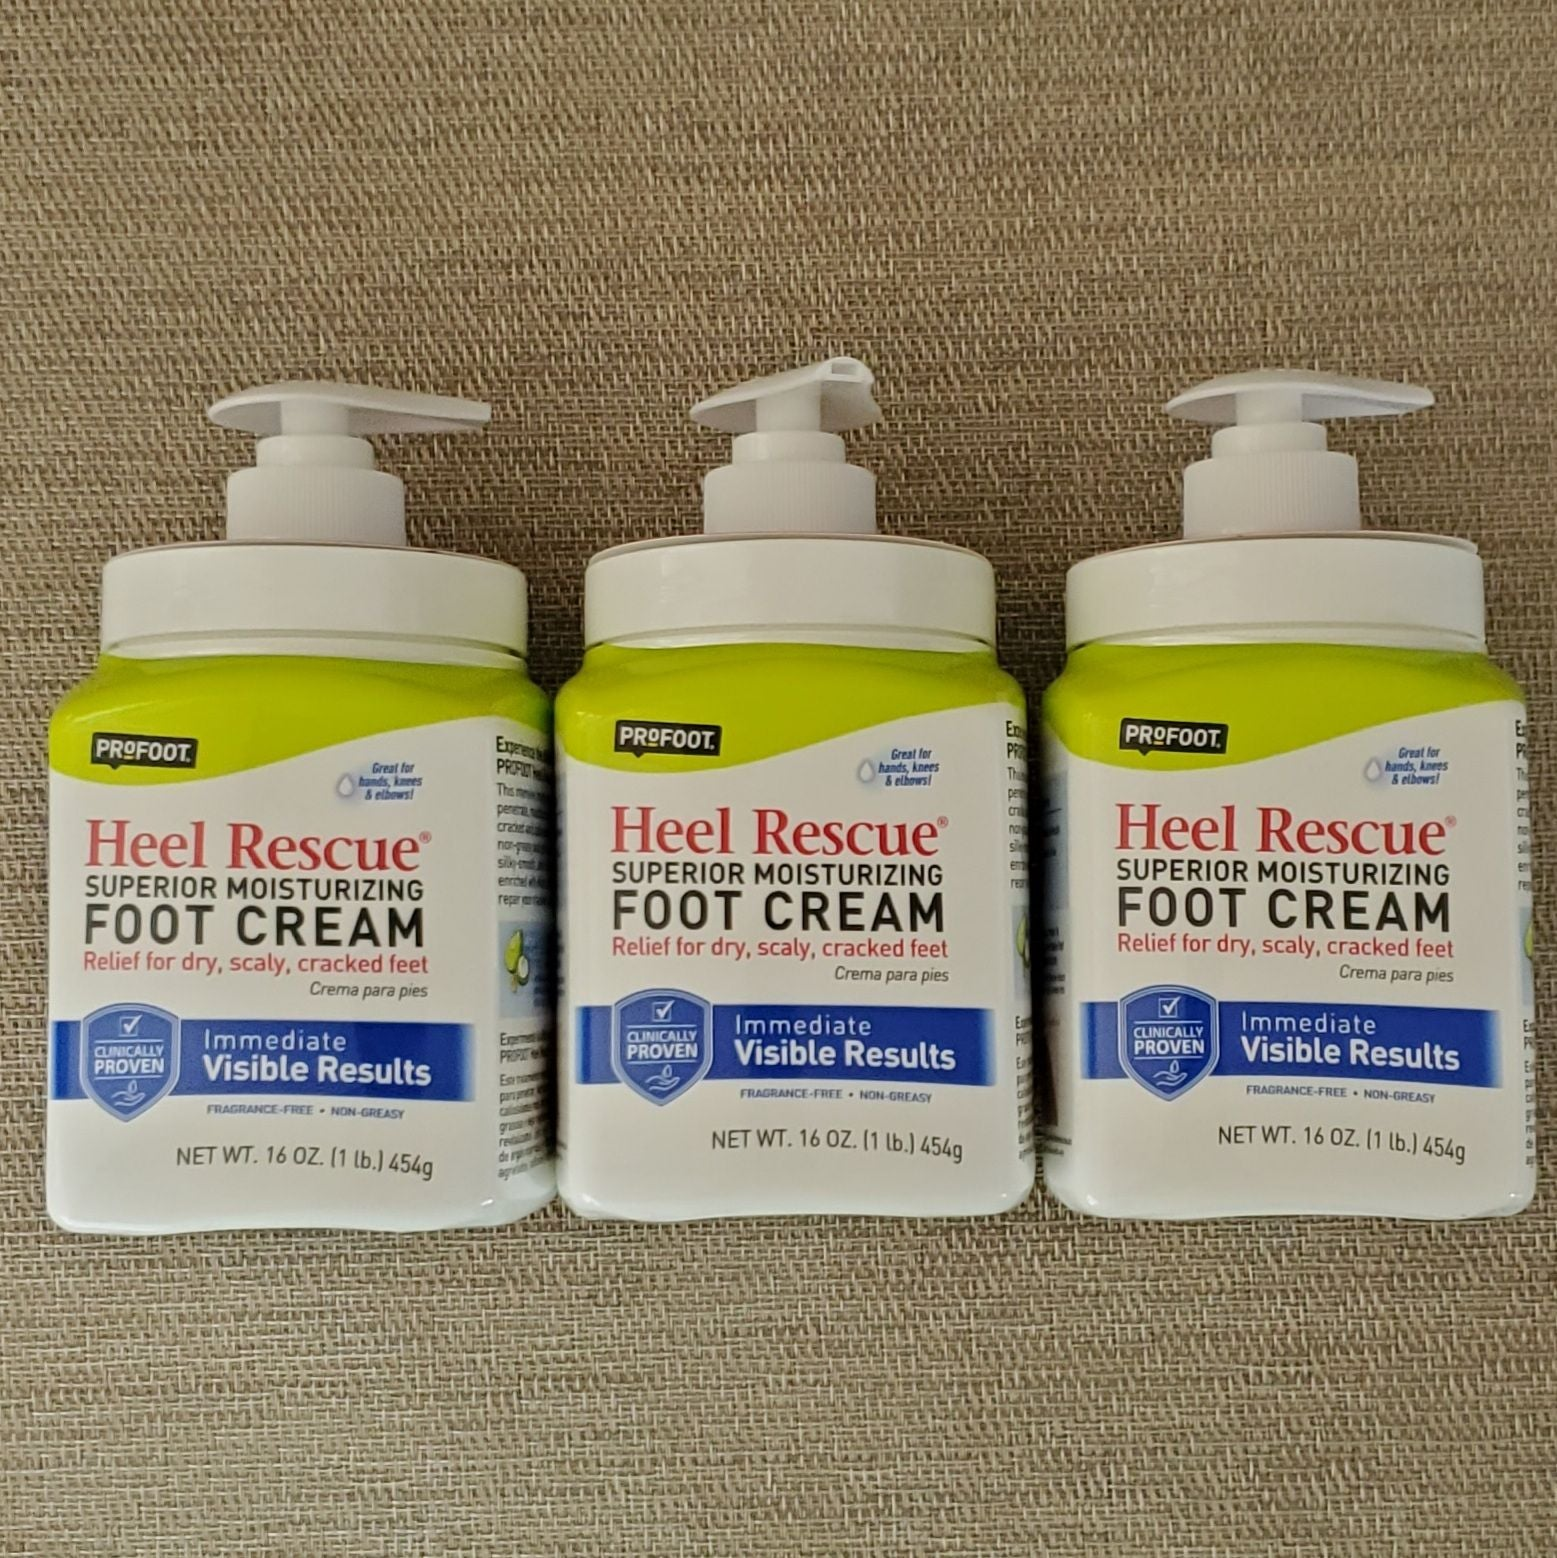 Profoot Heal Rescue Foot Cream- Set of 3